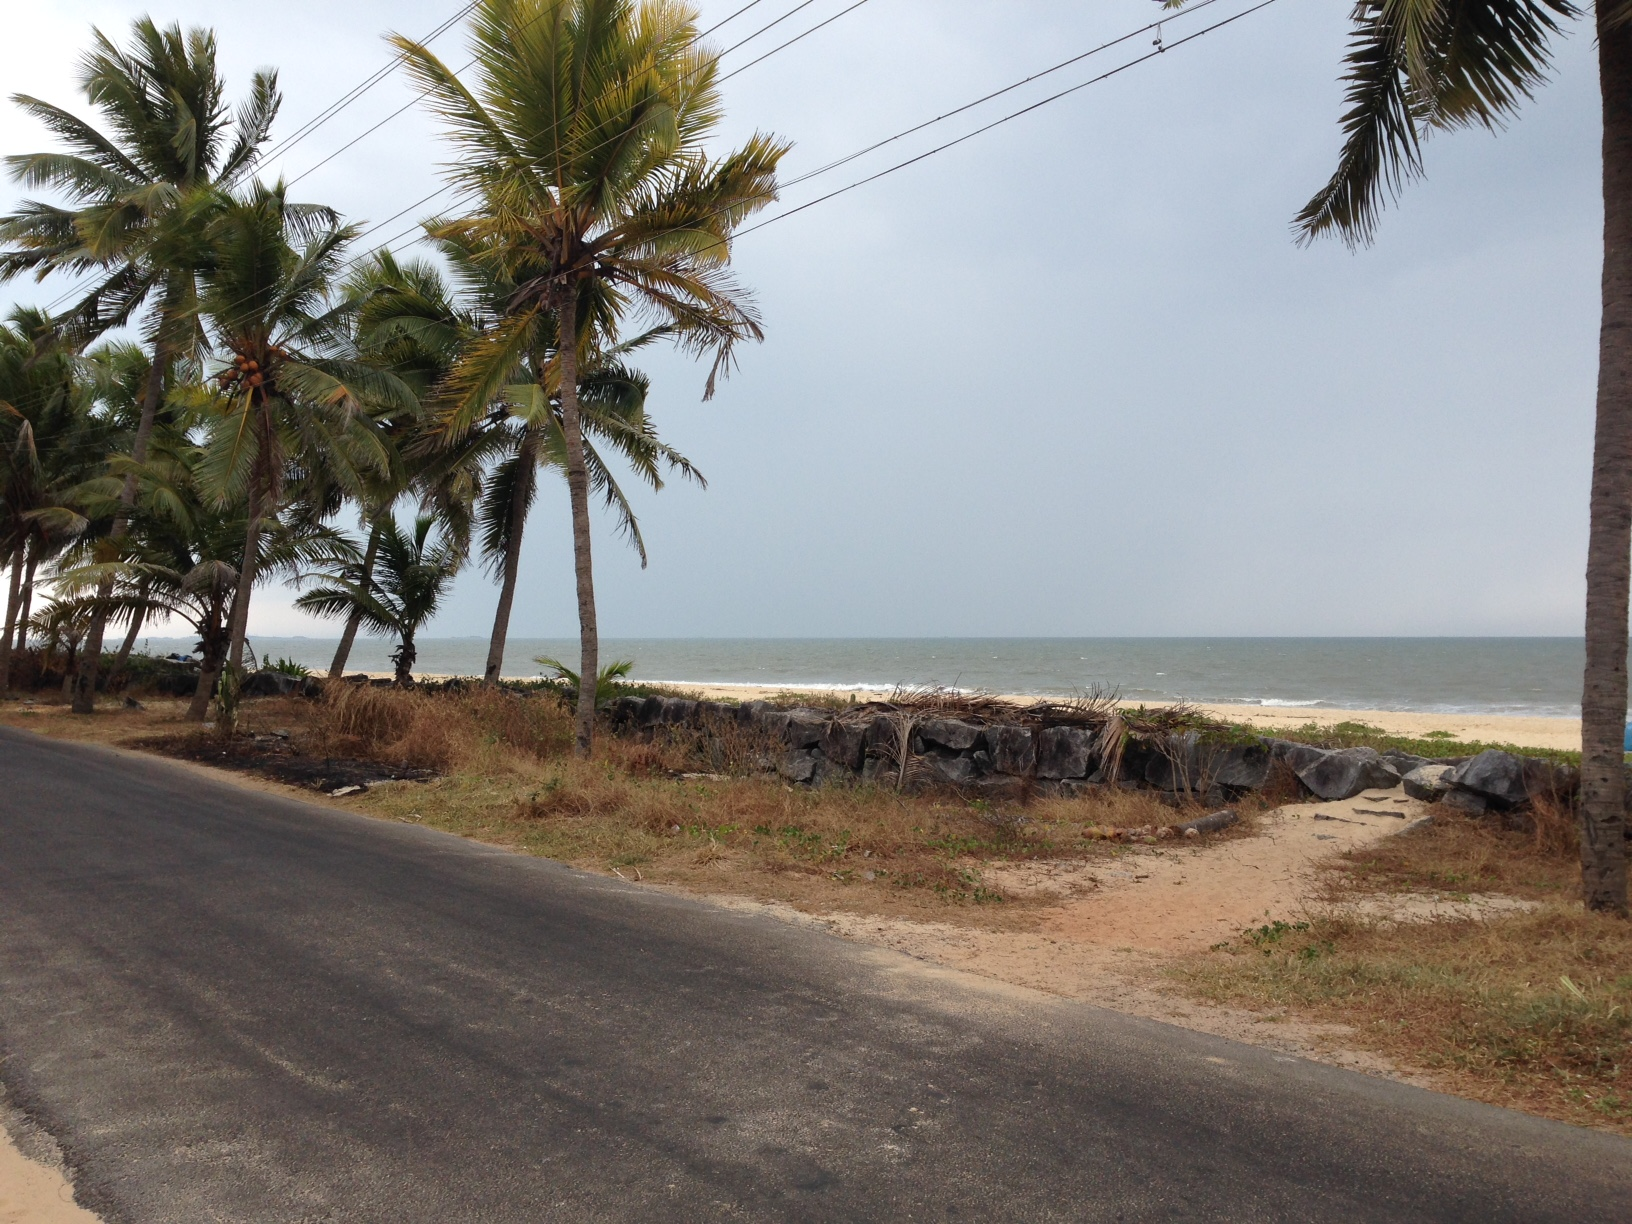 My first surfing experience – Hitting the Indian waves